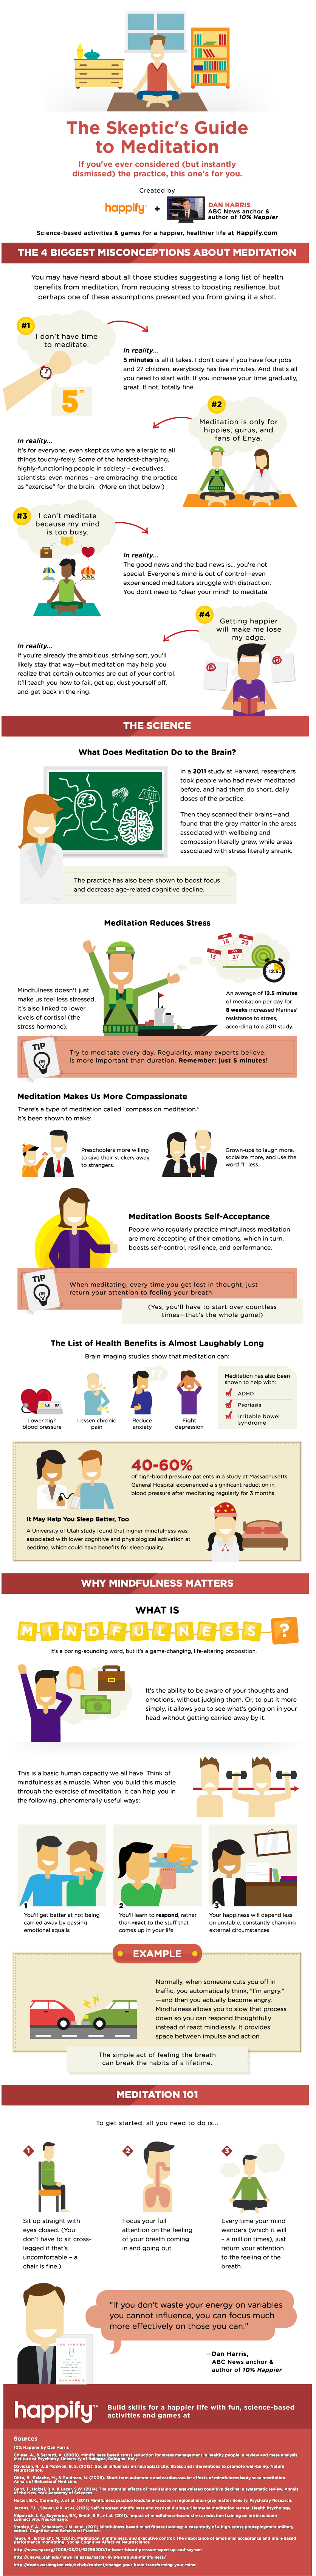 https://www.happify.com/hd/skeptics-guide-to-meditation-infographic-dan-harris/